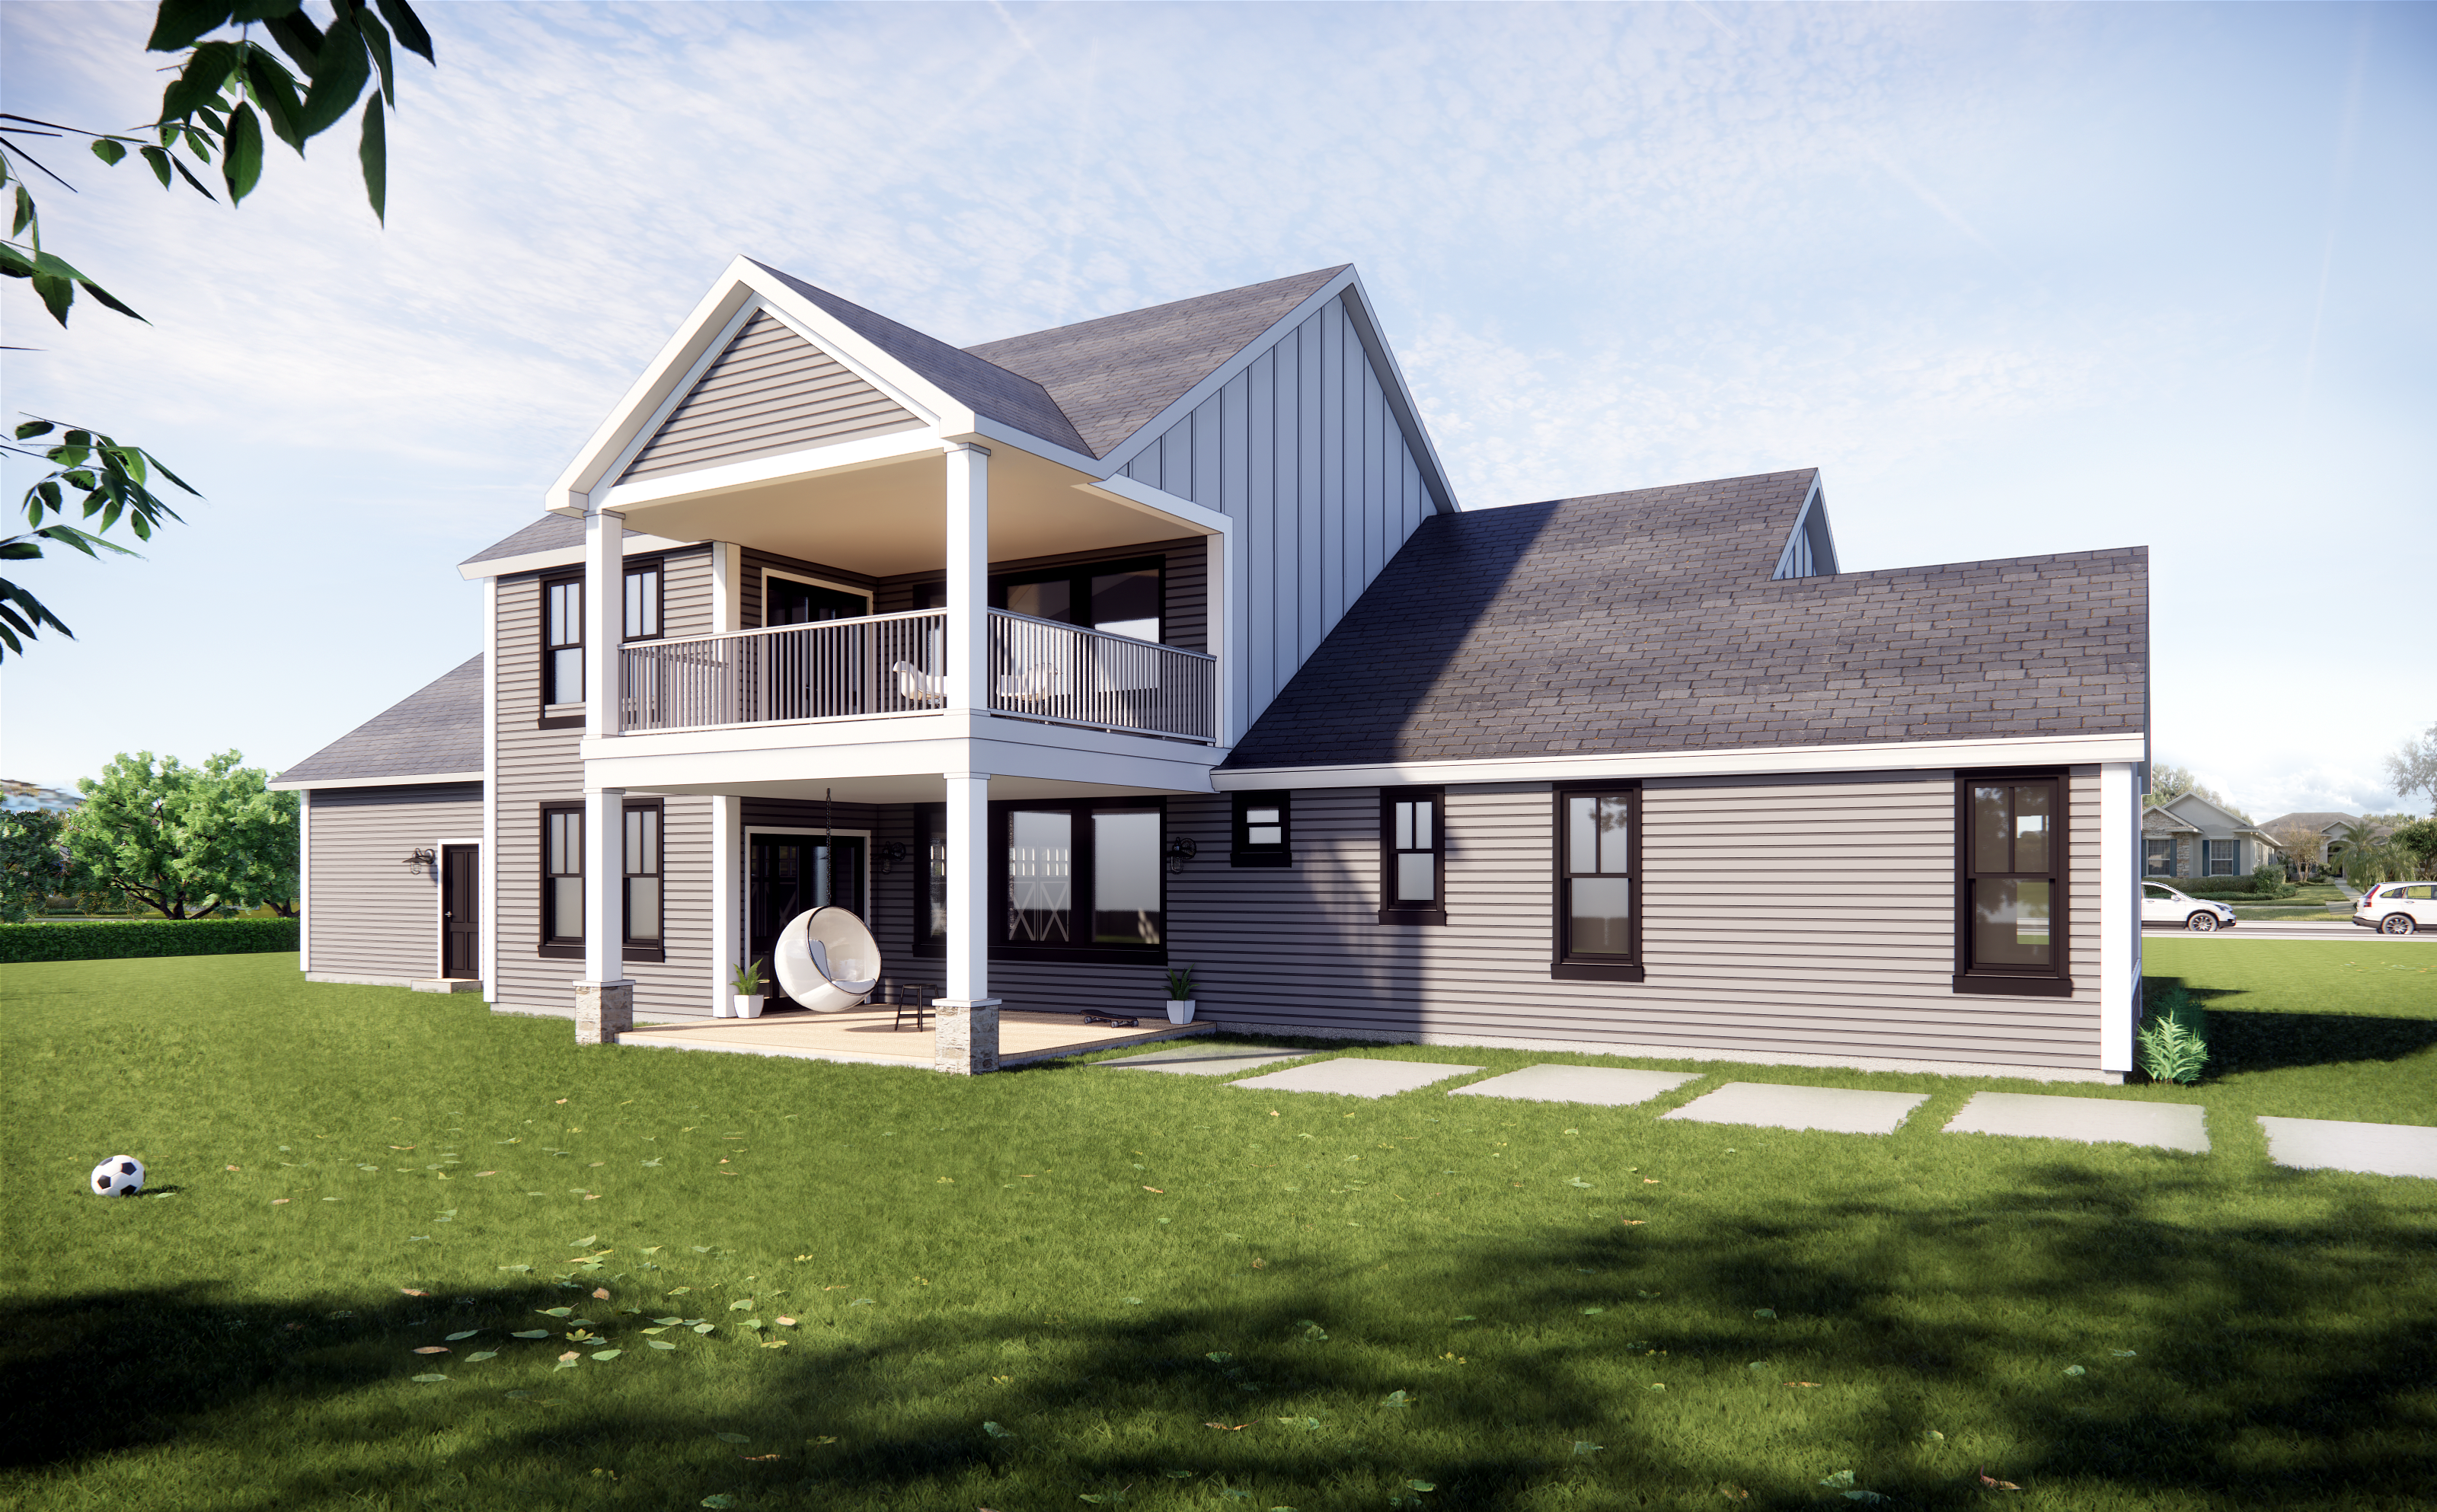 Architectural 3D visualizations of single family houses